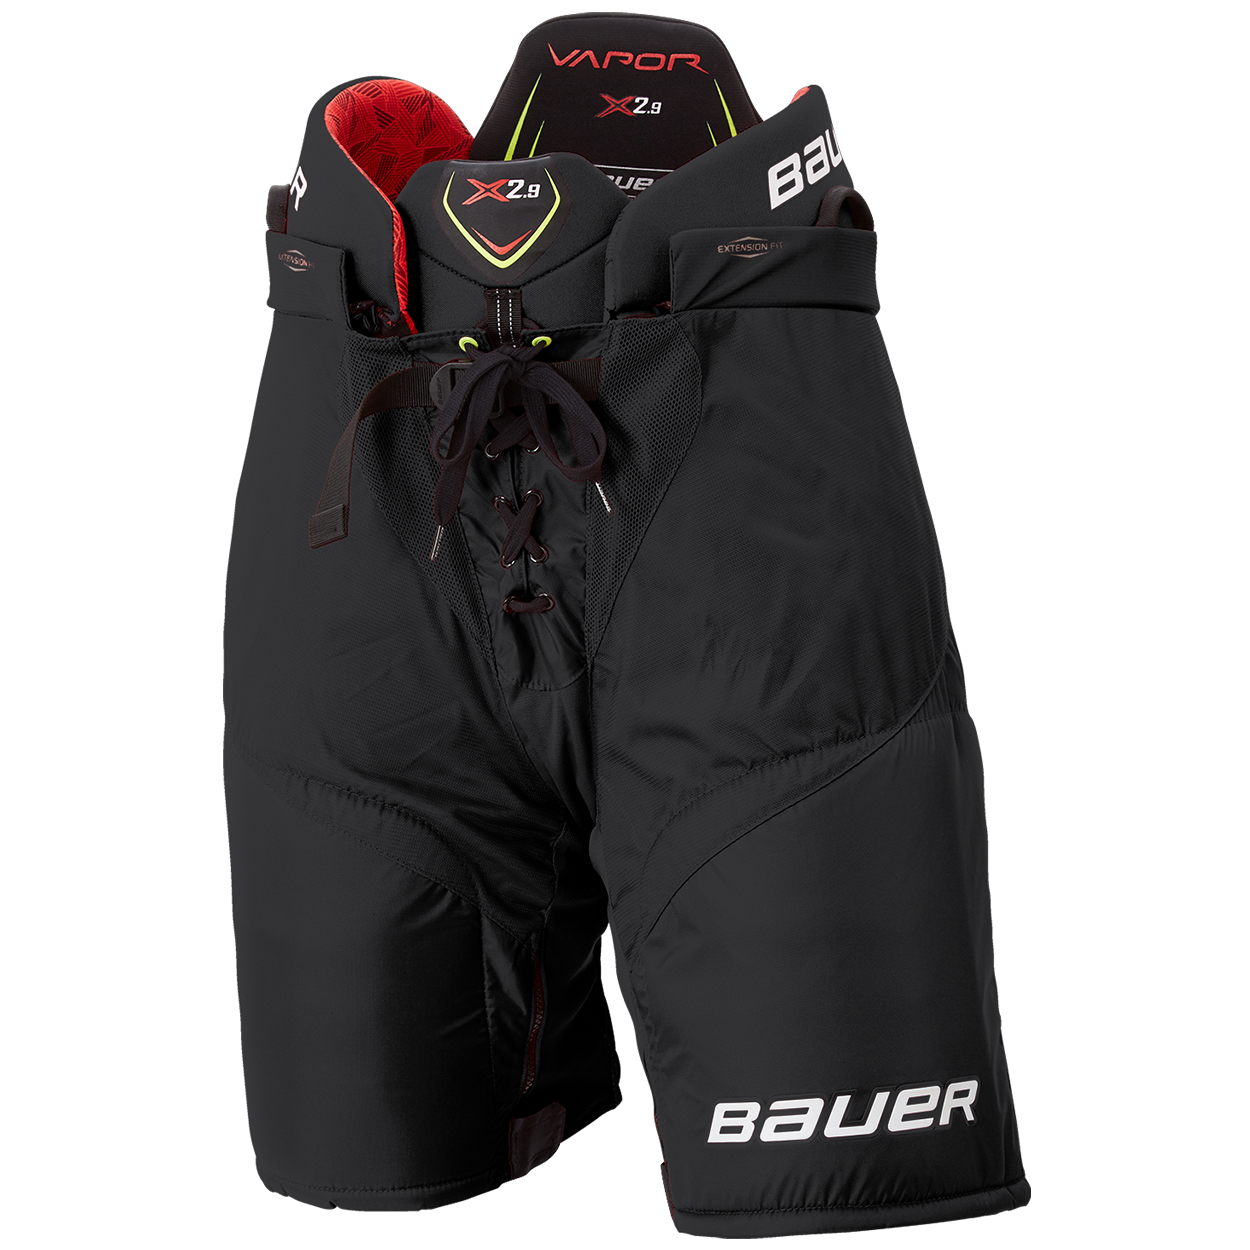 VAPOR X2.9 Pants Junior,Black,medium